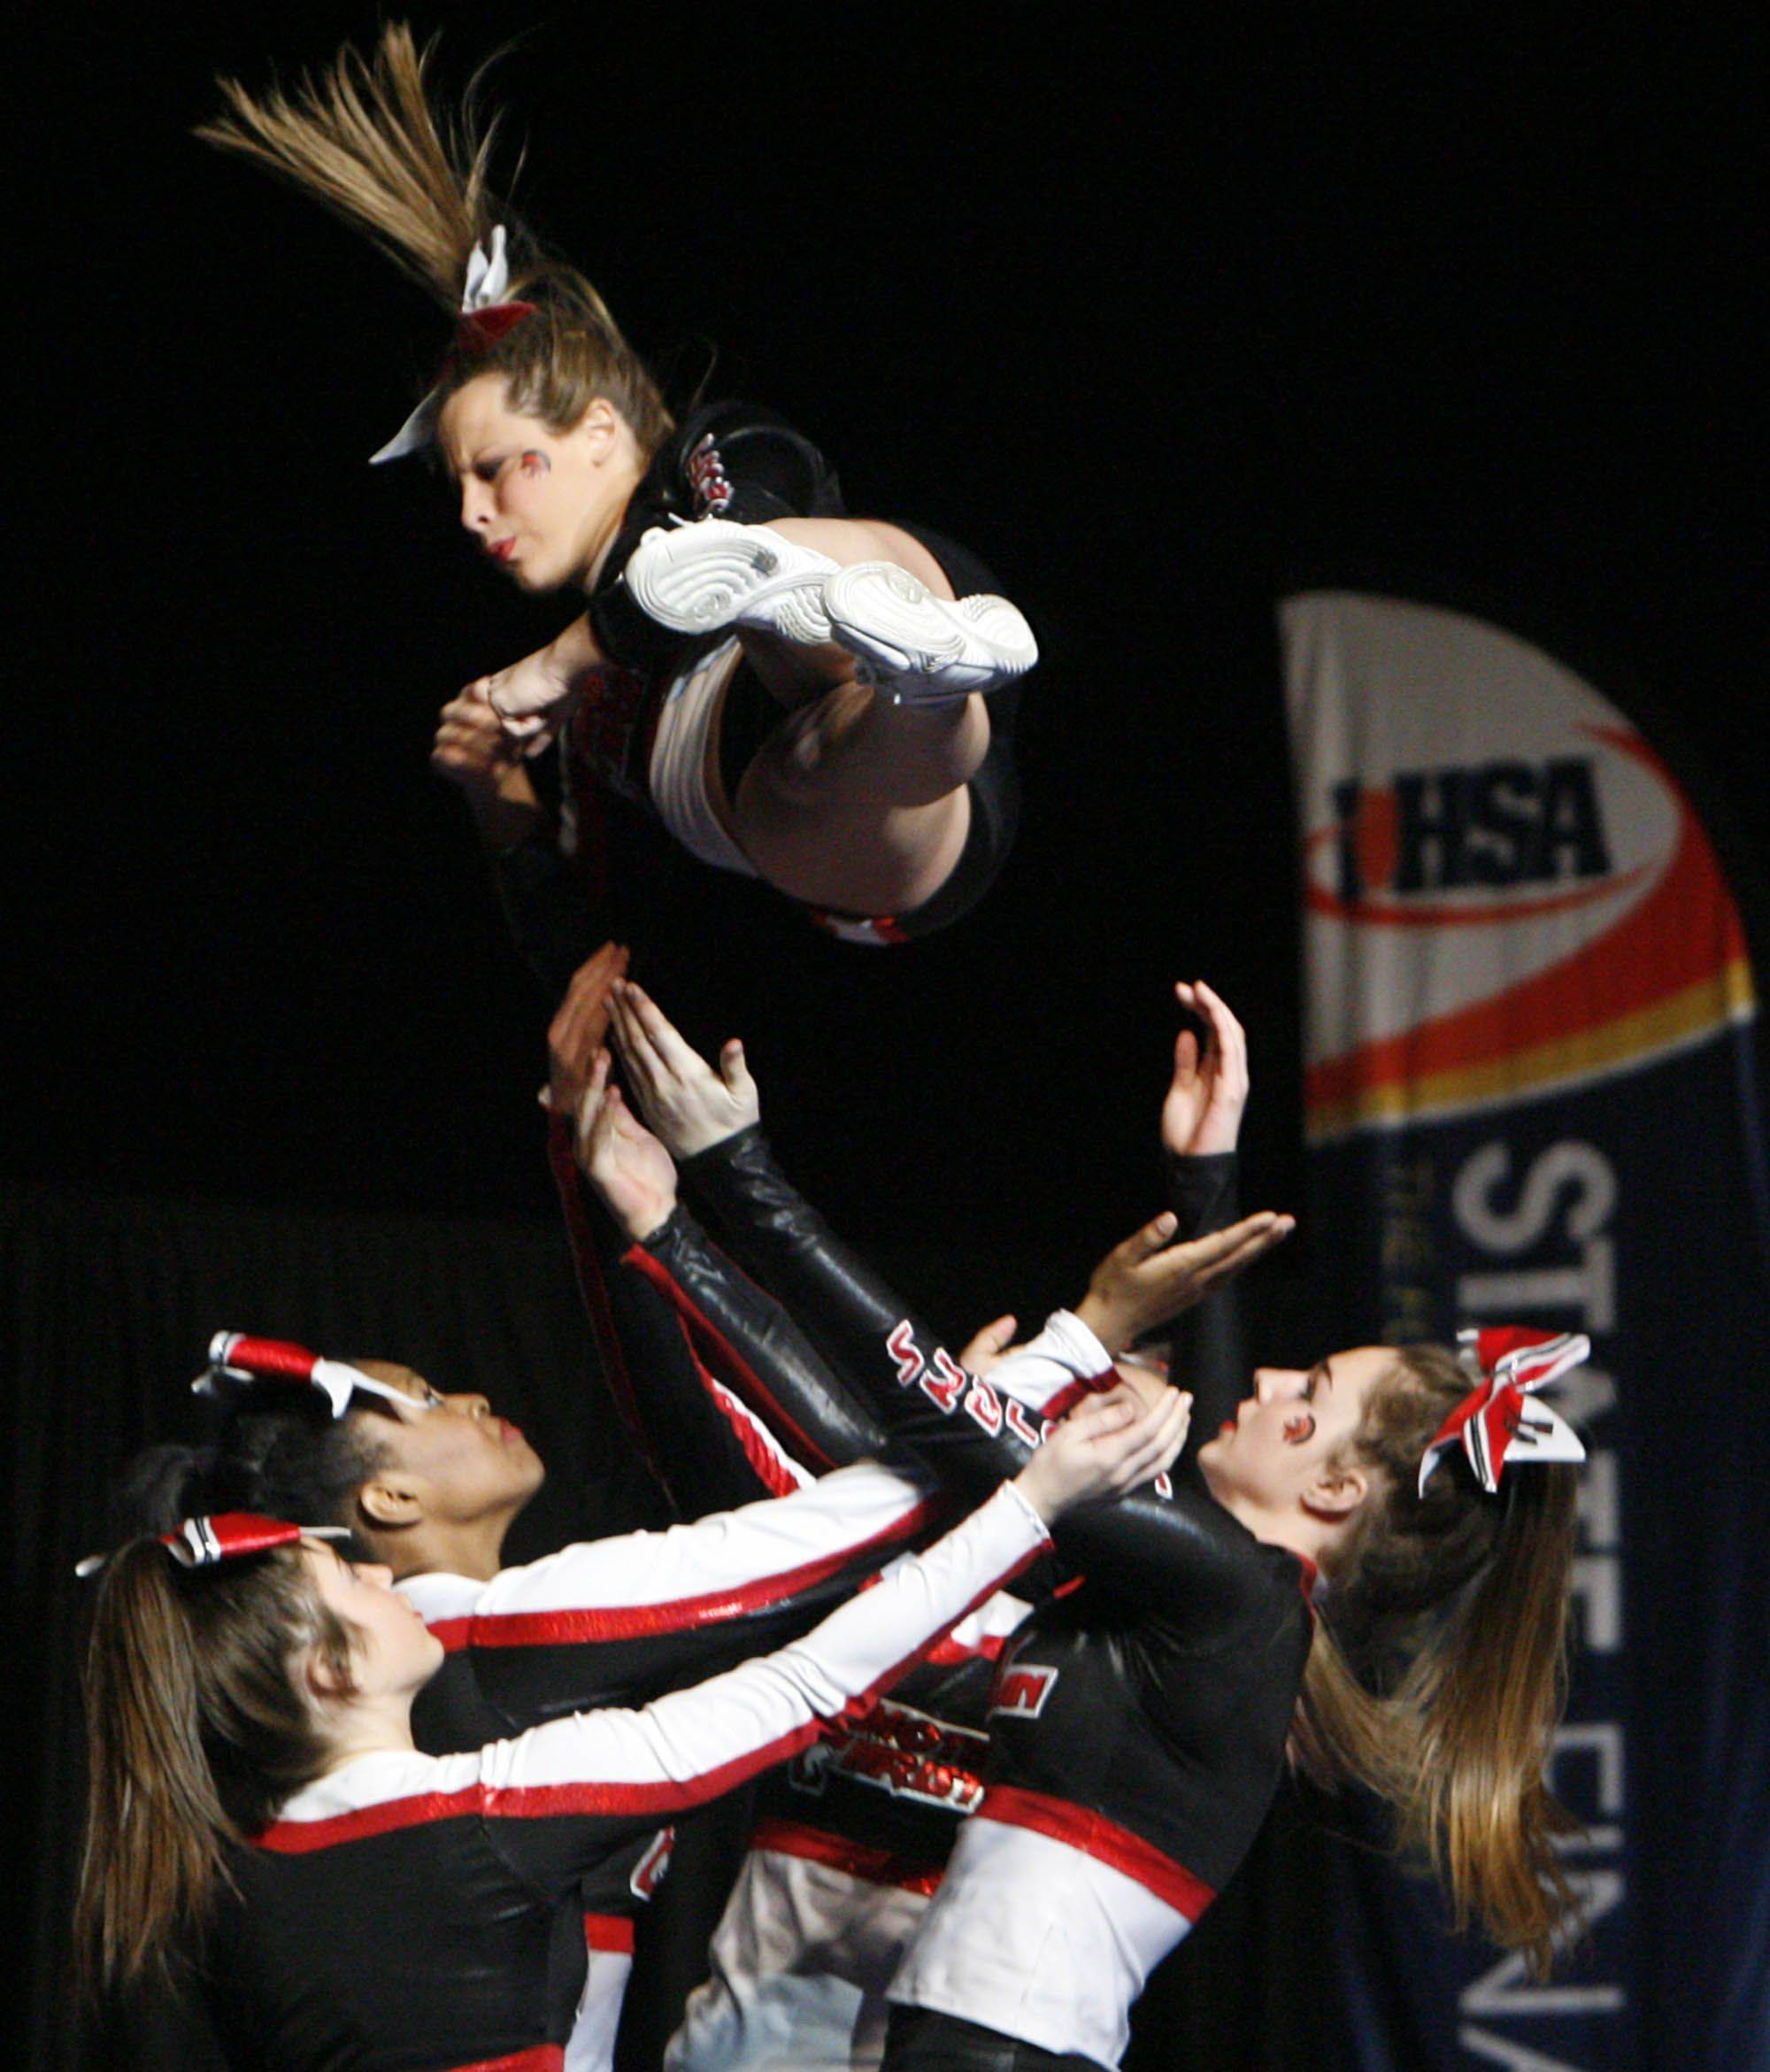 Timothy Christian competes in the small team category at IHSA cheerleading state finals at U.S. Cellular Coliseum in Bloomington on Saturday, February 4th.